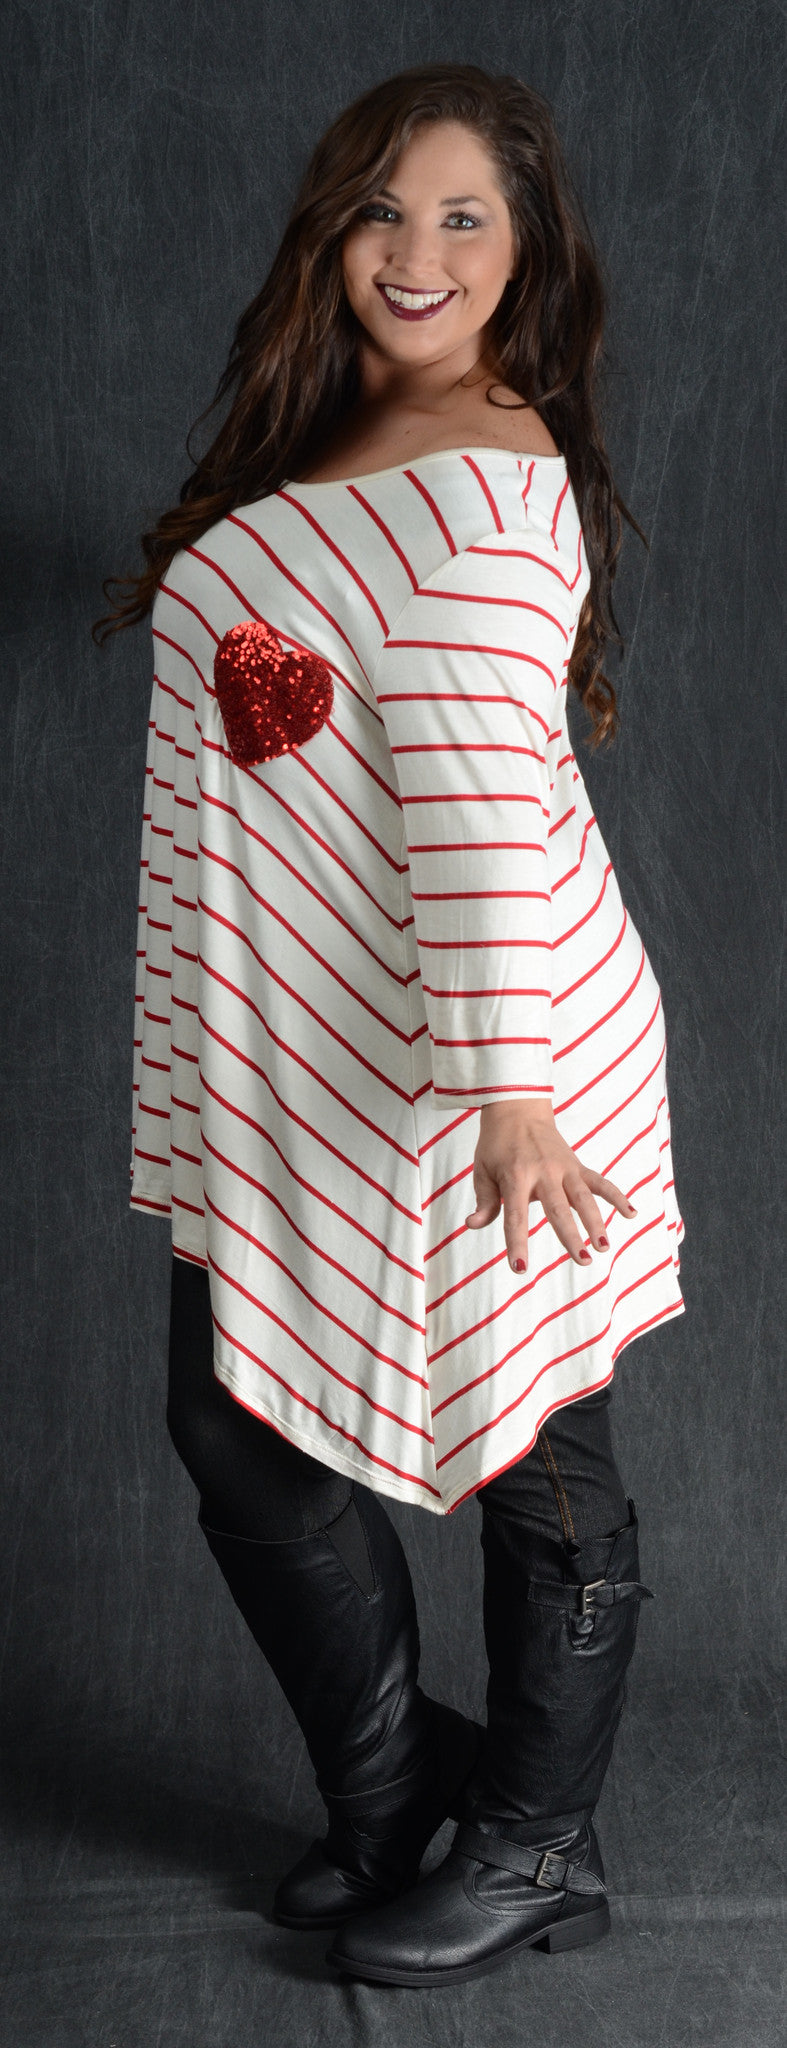 Striped Ivory Heart Patch Top - www.mycurvystore.com - Curvy Boutique - Plus Size